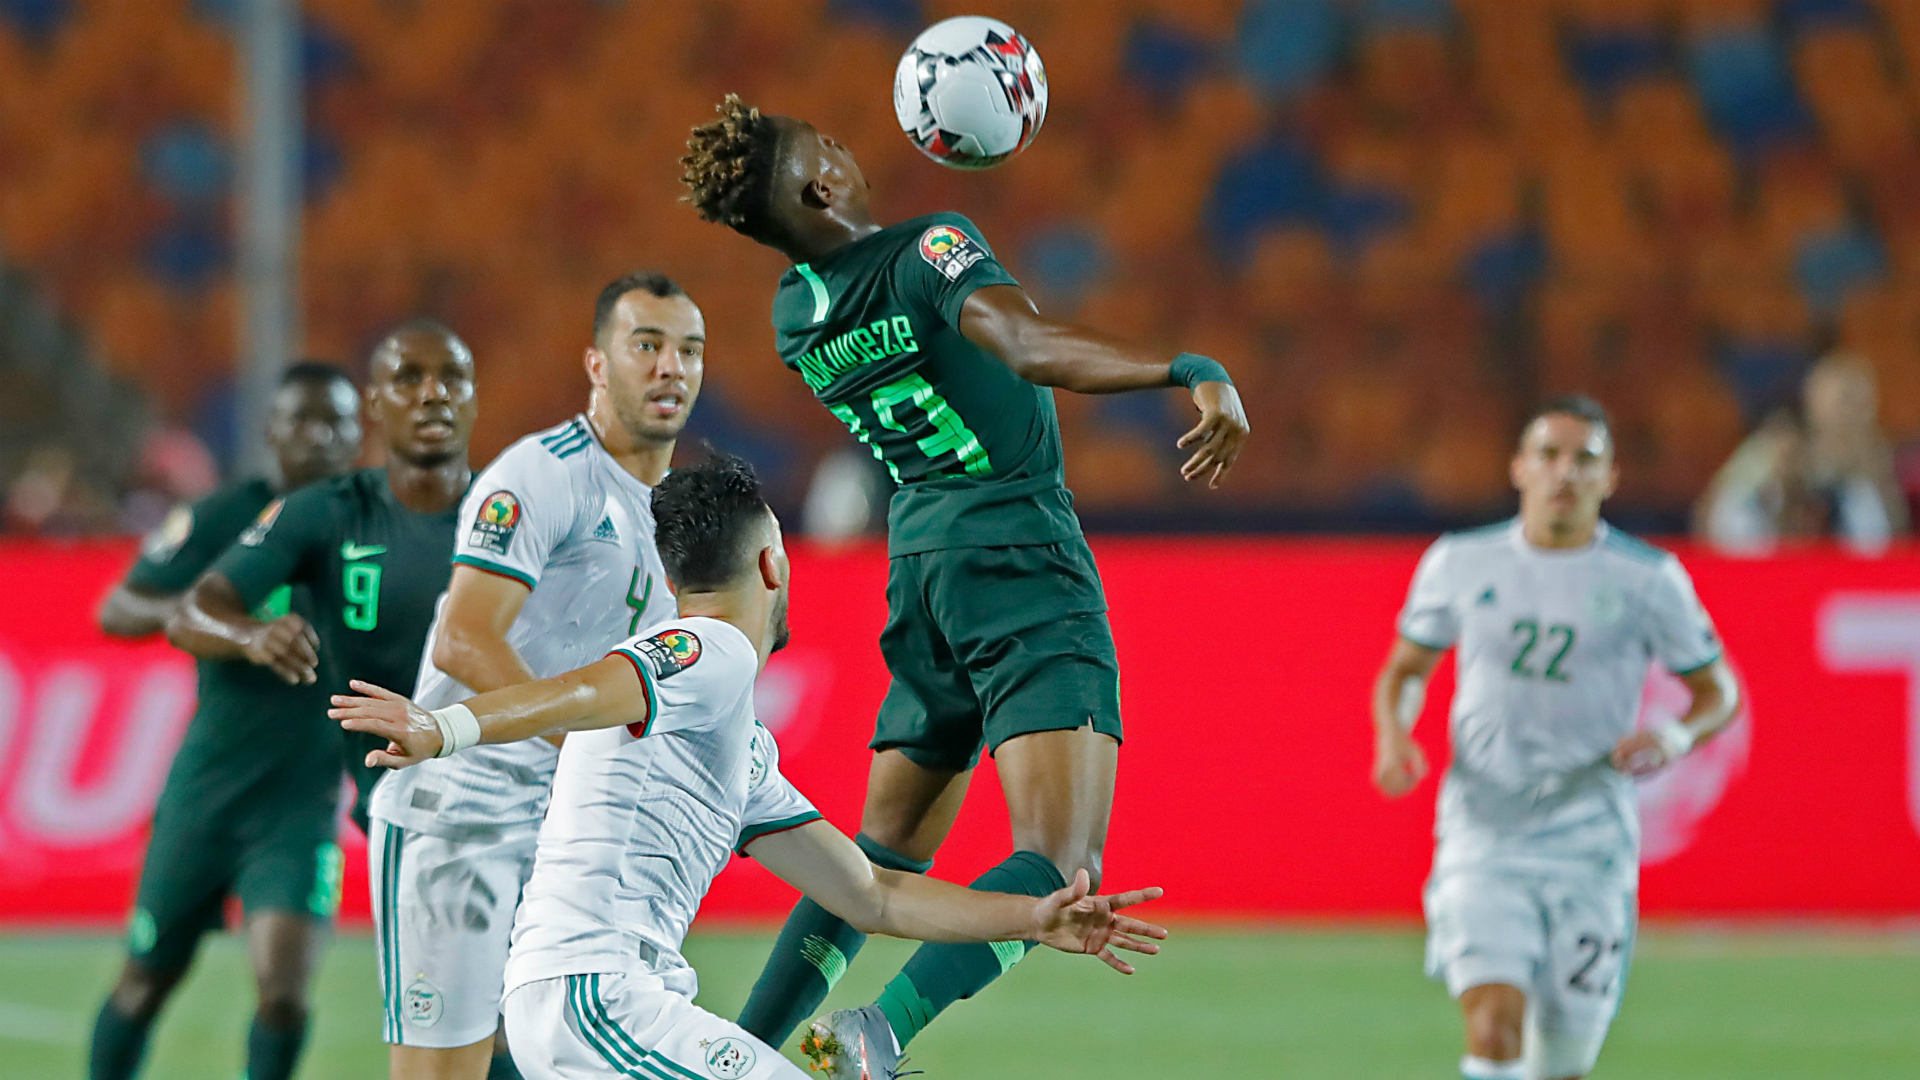 AFCON 2019: Nigeria, Tunisia set to battle for bronze